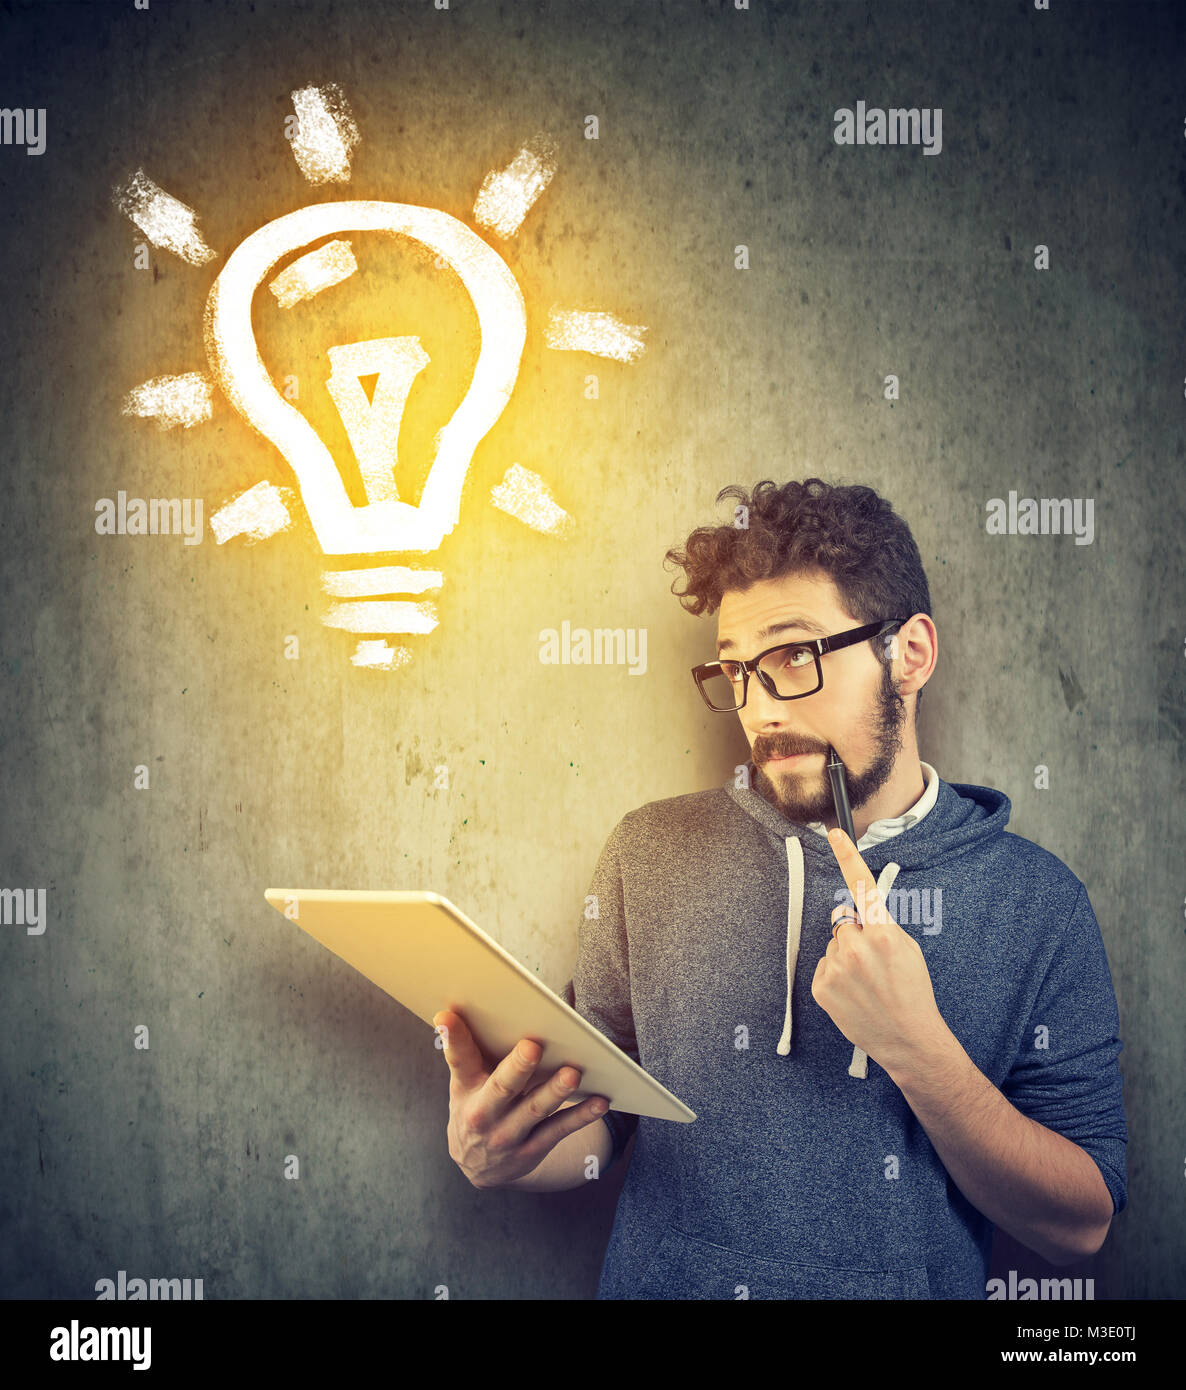 Casual young student using tablet and creating new idea looking up. - Stock Image